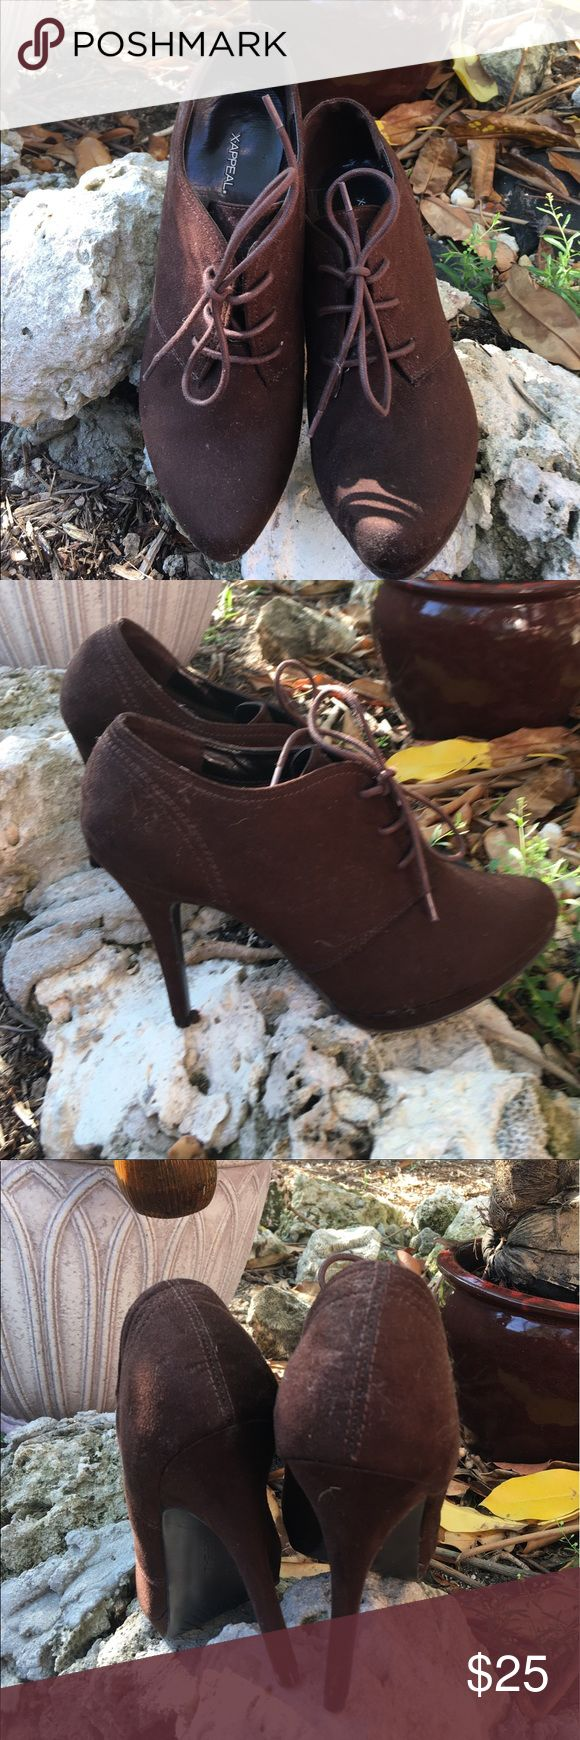 """XAppeal brown lace up  booties XAppeal brown lace up booties Never been worn! Daughter bought but have been sitting in closet! There is a mar on the heel of one see last pic- I am guessing happened from being in closet with so many other shoes! Price is reflective NWOT 4"""" heel height ✅I ship same or next day ✅Bundle for discount Xappeal Shoes Ankle Boots & Booties"""